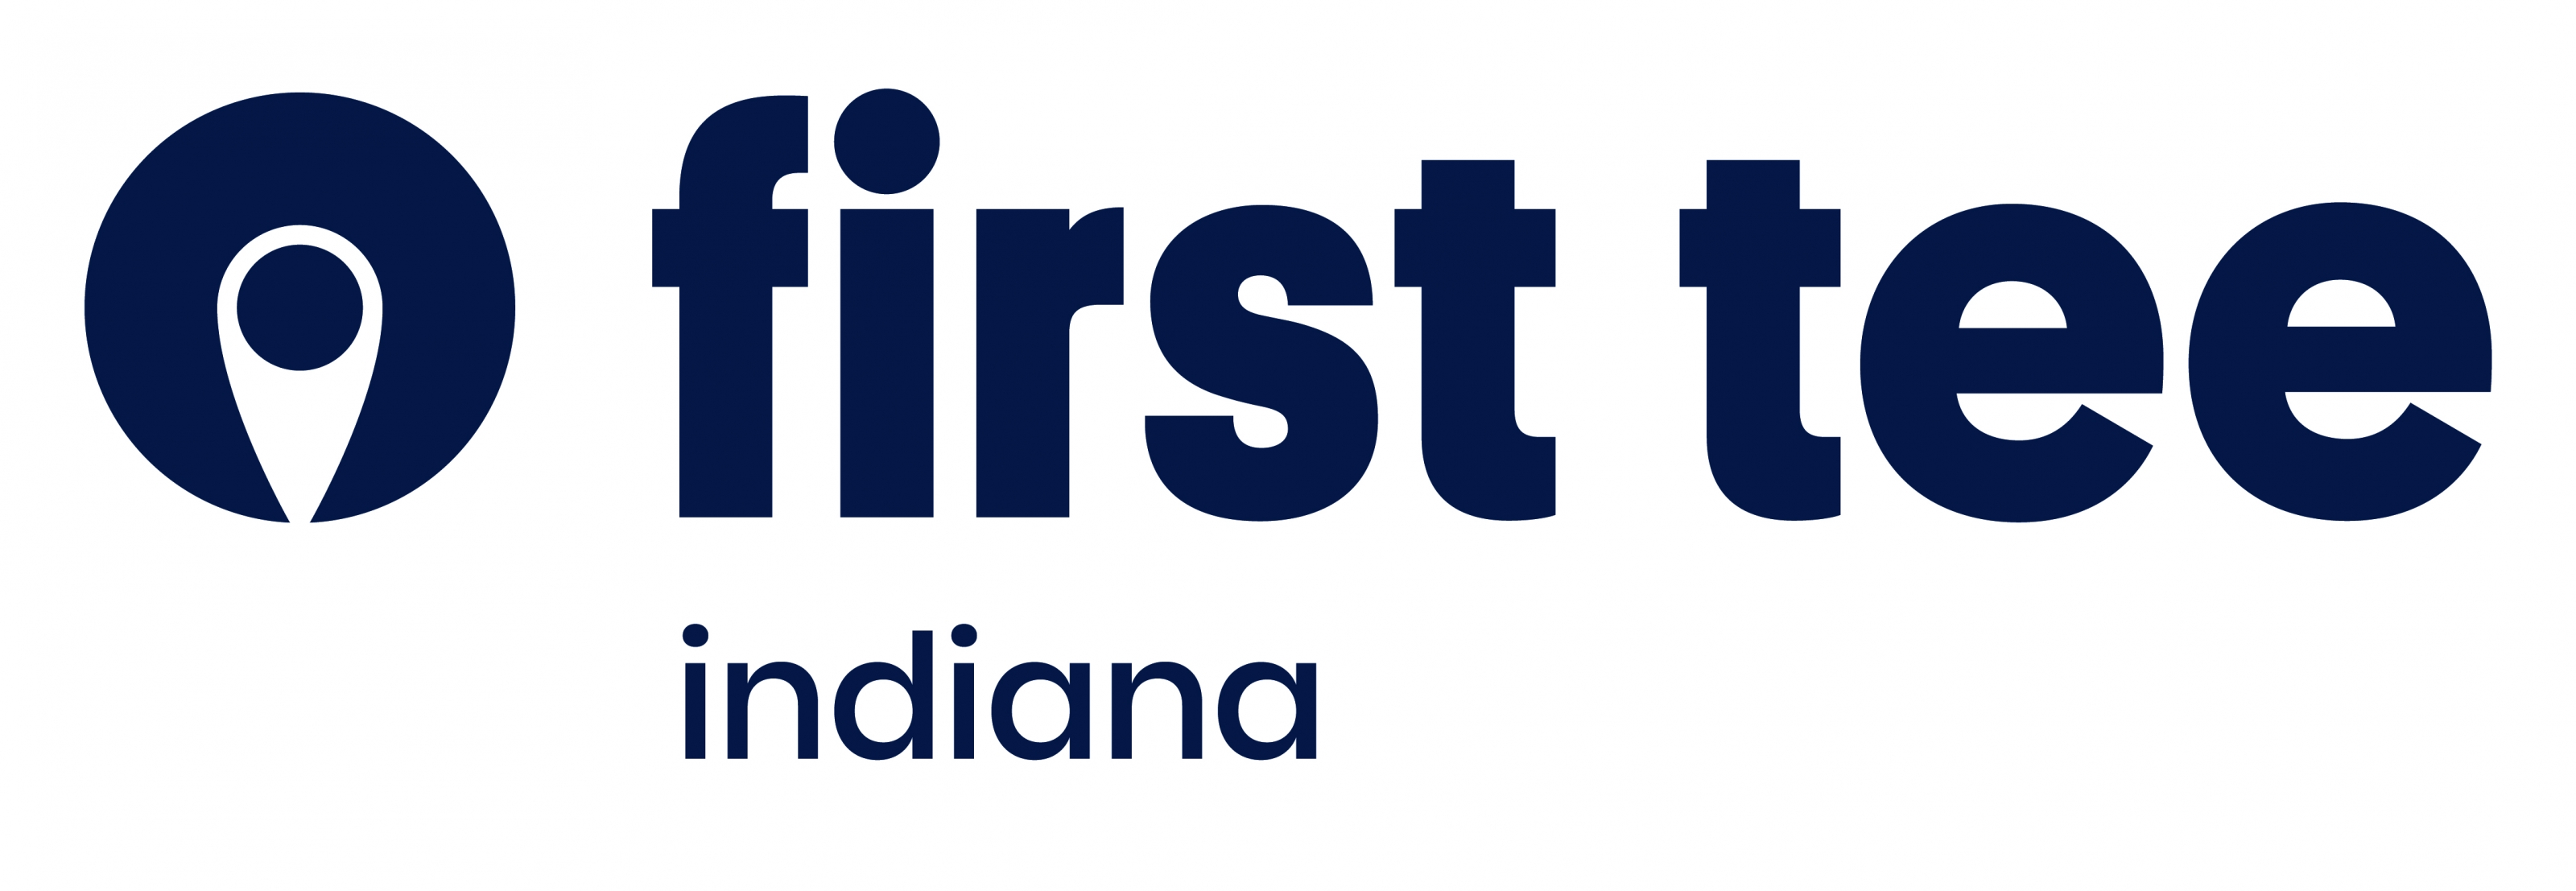 Two First Tee Indiana Members Accepted To Leader Summit In Montana